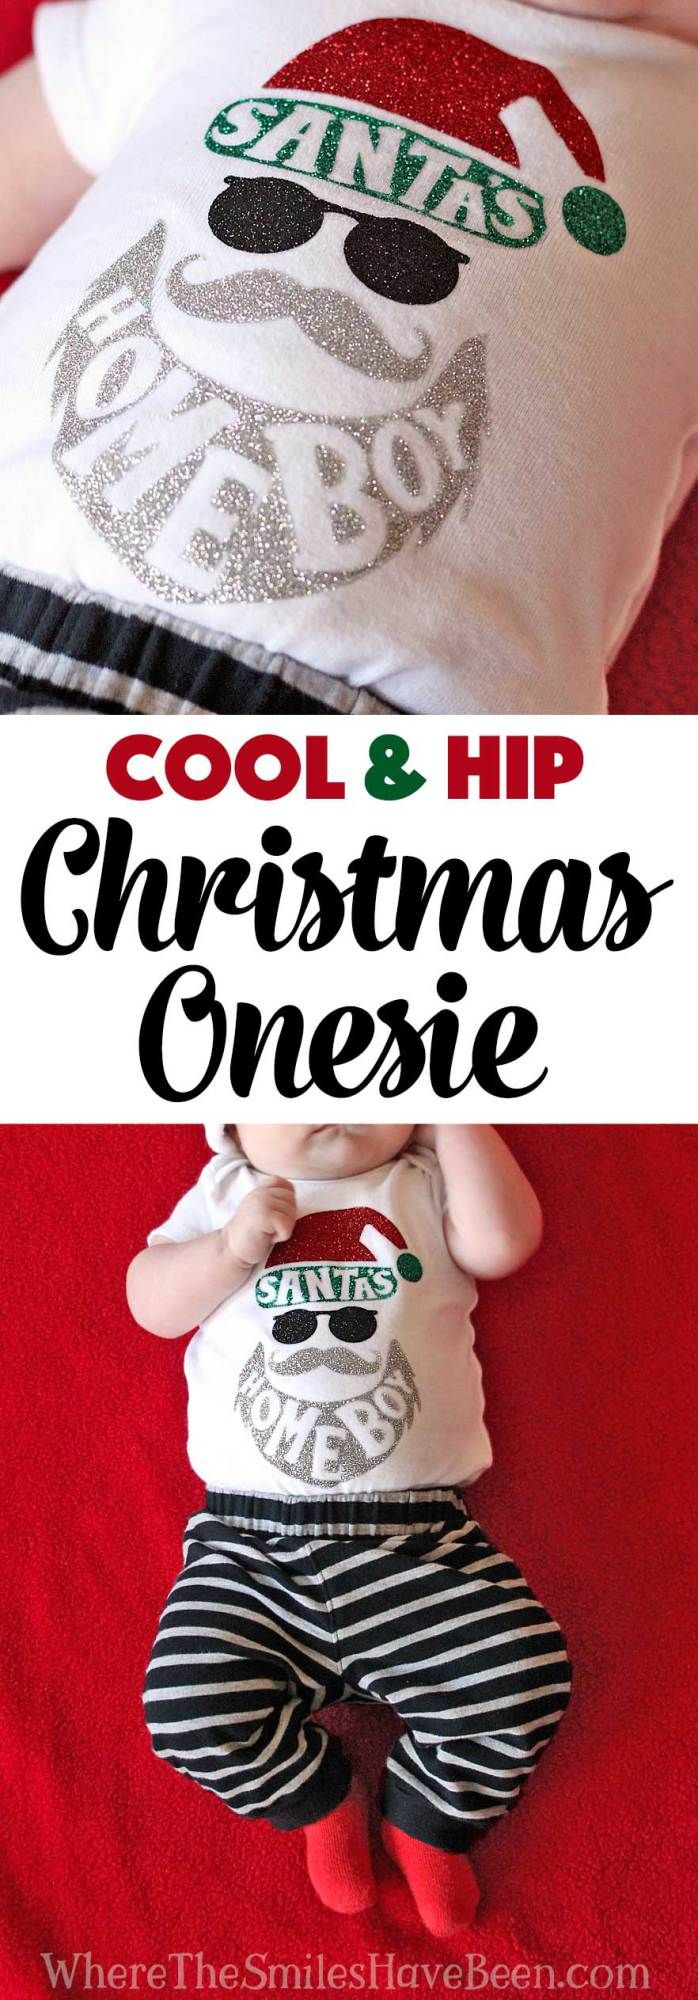 Cool & Hip 'Santa's Homeboy' Christmas Onesie   Where The Smiles Have Been